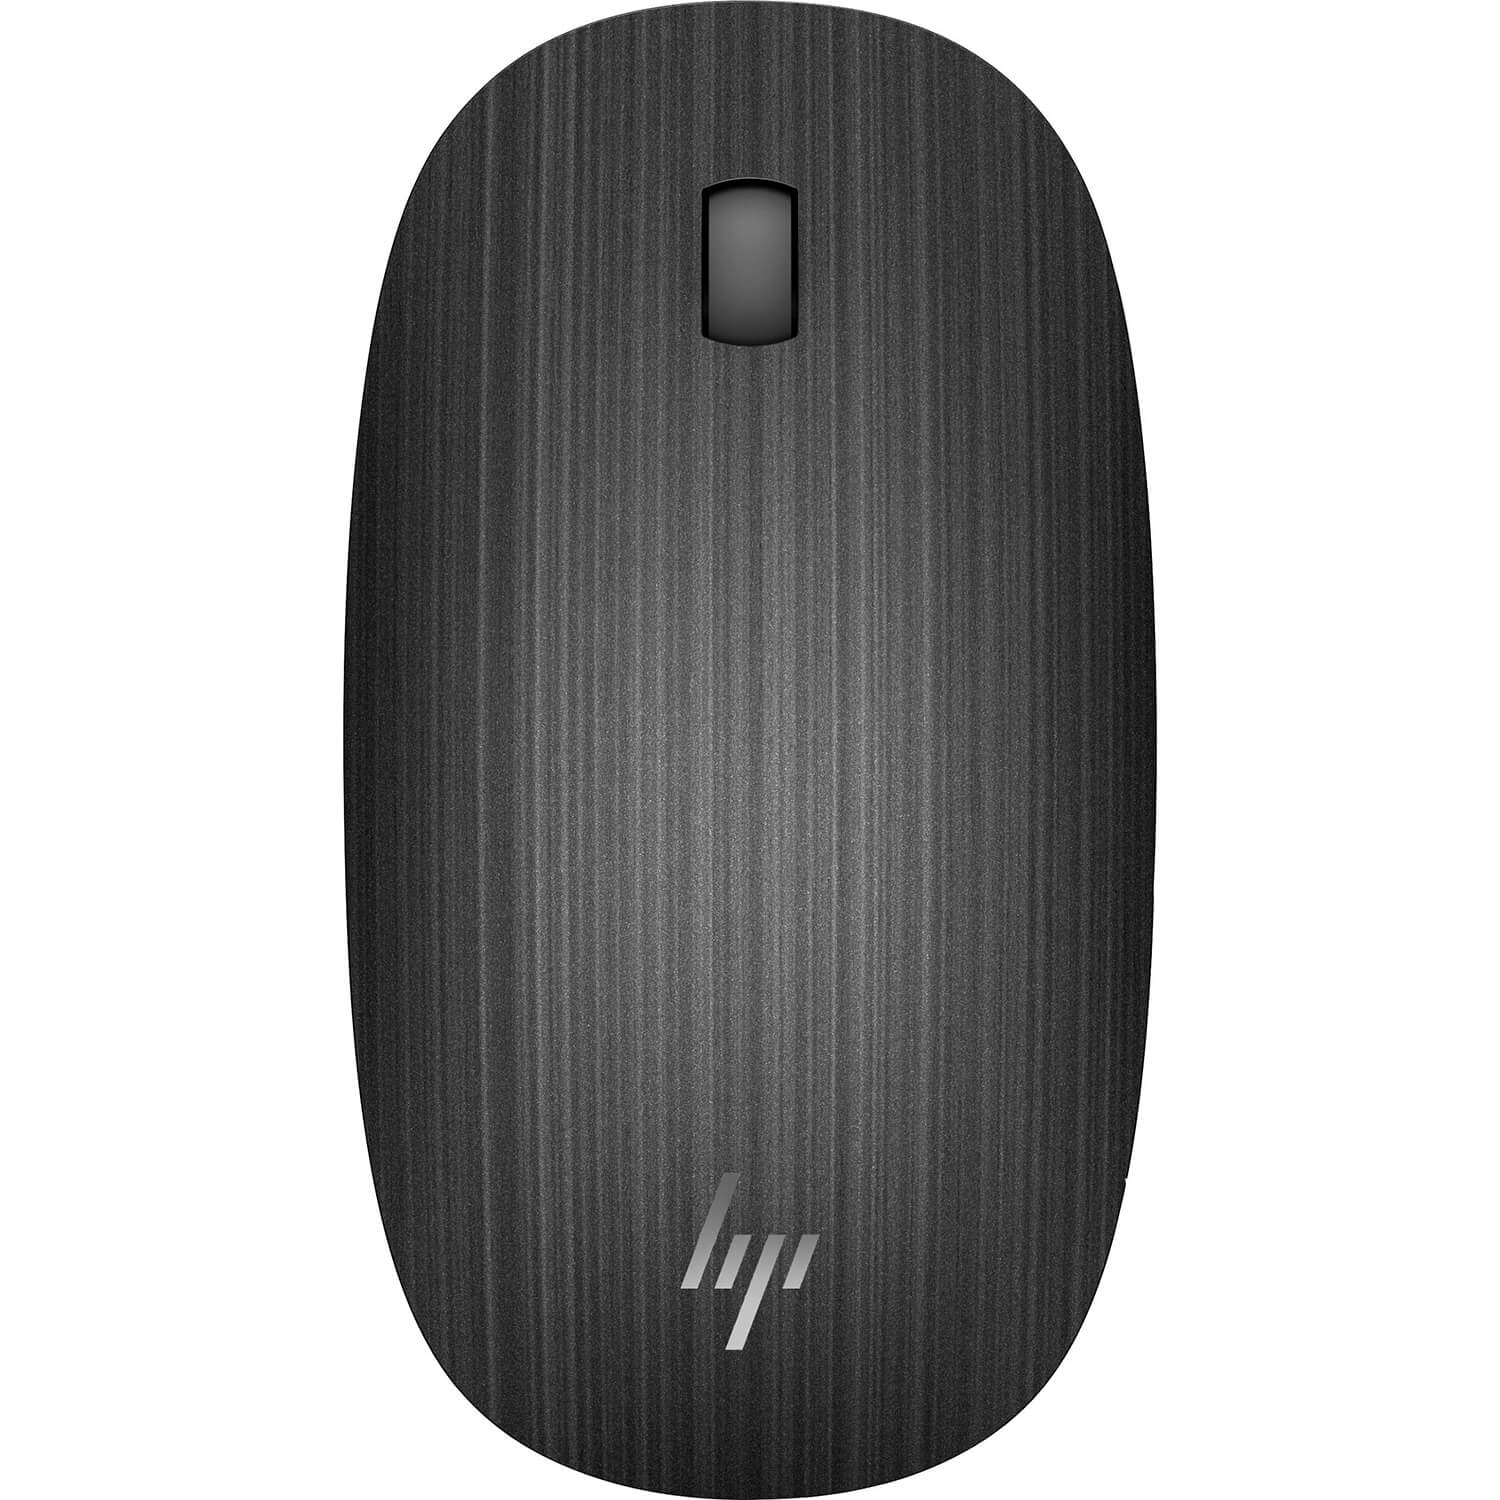 Refurbished HP Spectre 510 3-Button Wireless Bluetooth Optical Scroll Mouse 1600 DPI - Black